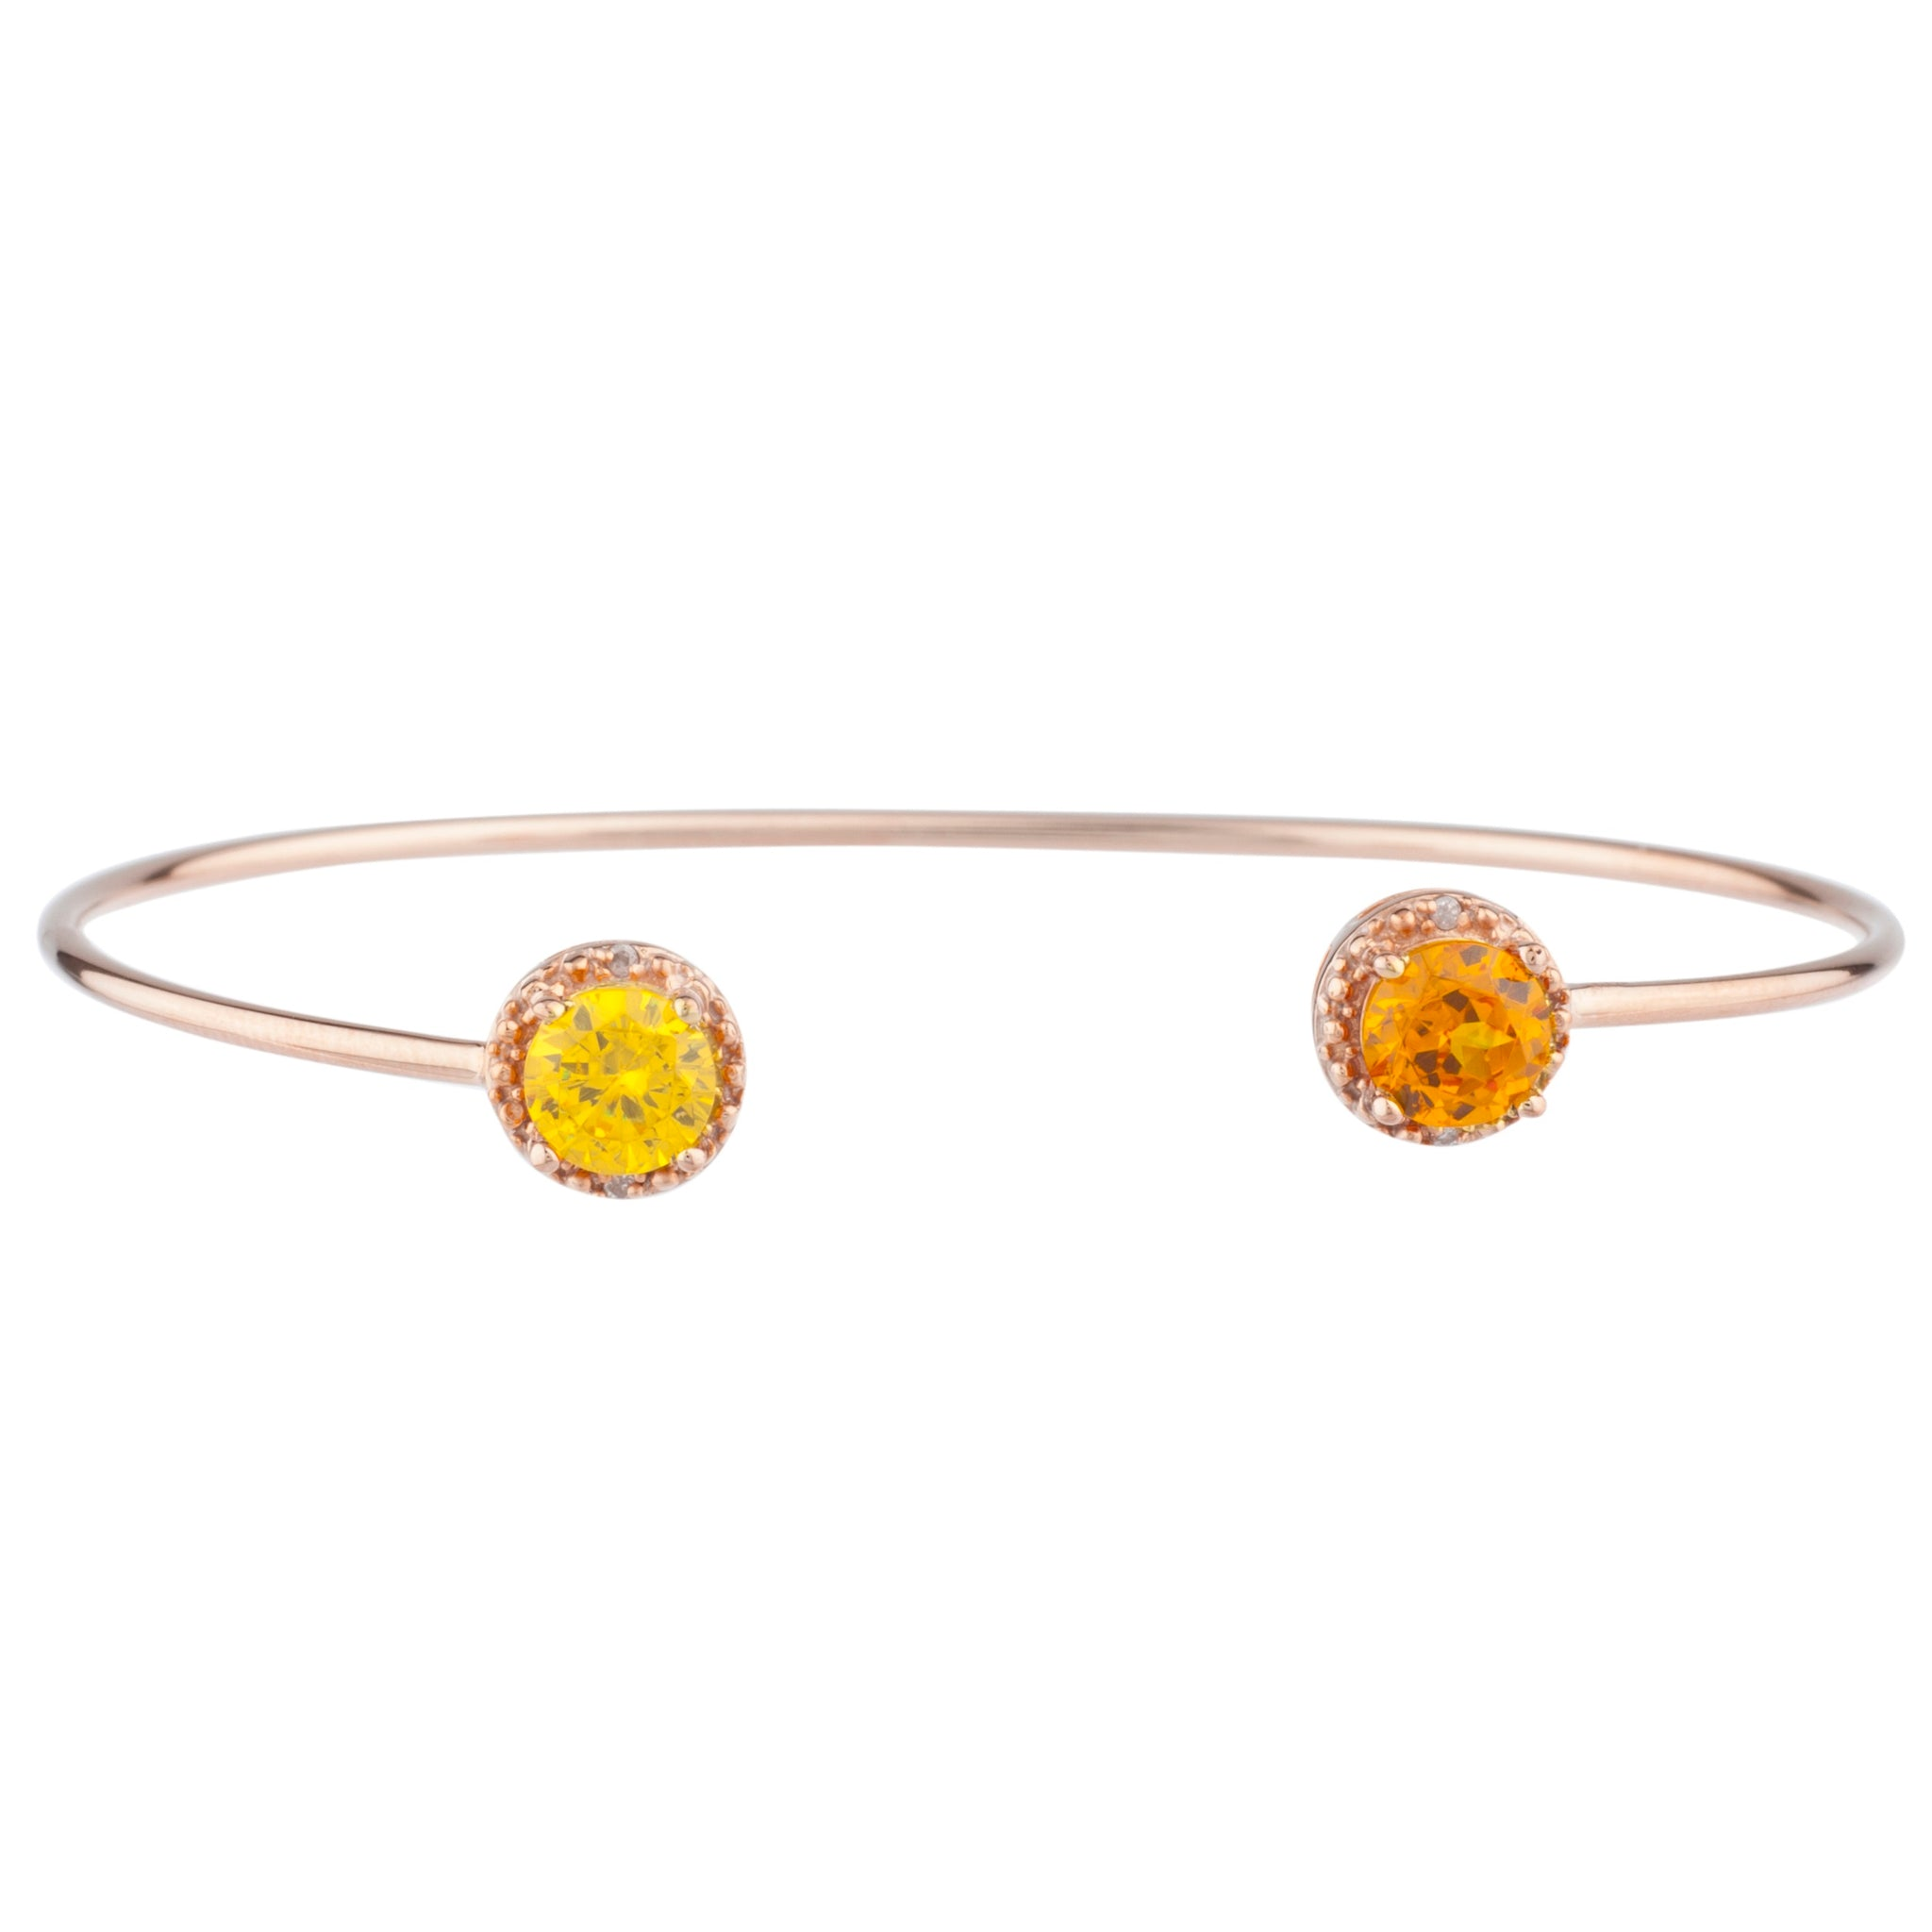 Orange Citrine & Yellow Citrine Diamond Bangle Round Bracelet 14Kt Rose Gold Plated Over .925 Sterling Silver